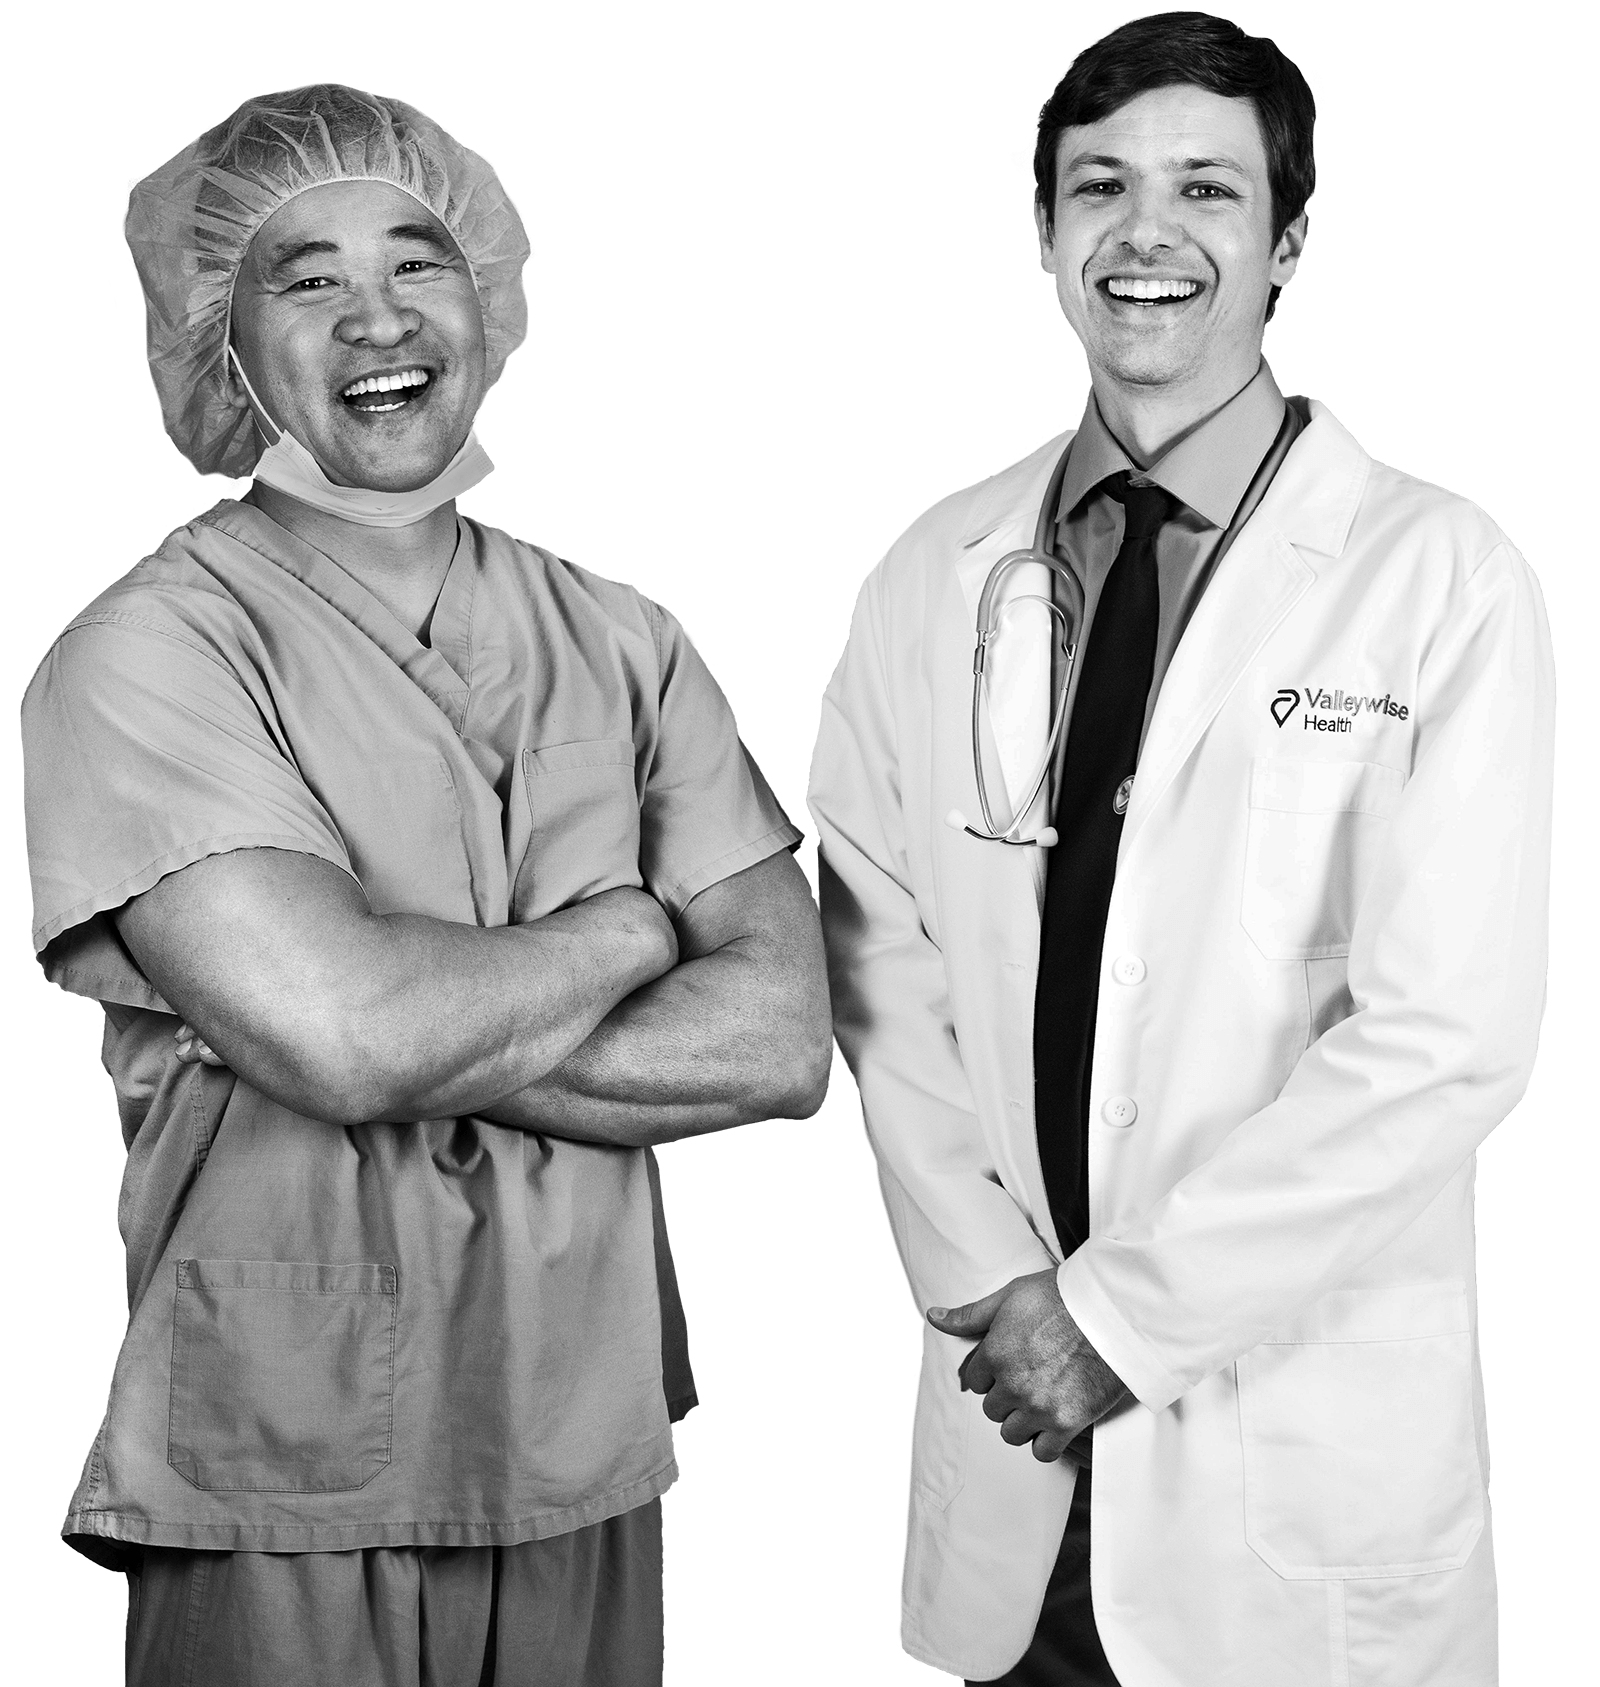 valleywise health doctor and surgeon